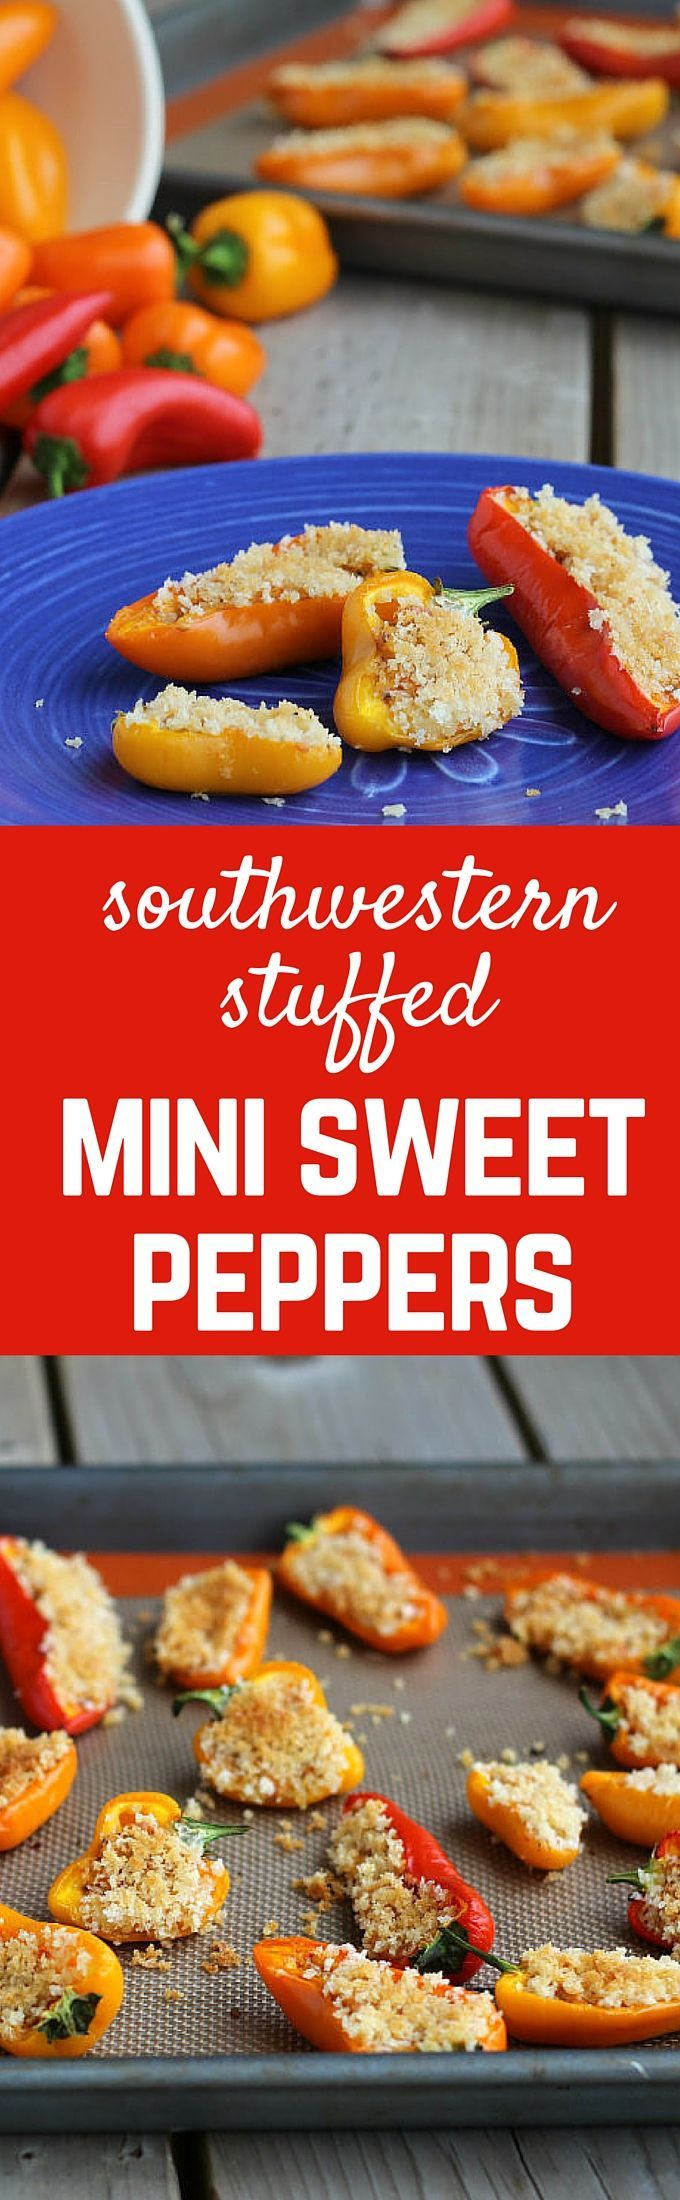 These stuffed mini sweet peppers have a perfect touch of the southwest. Spicy, creamy, crunchy and so tasty! What more could you want? Get the recipe on http://RachelCooks.com!